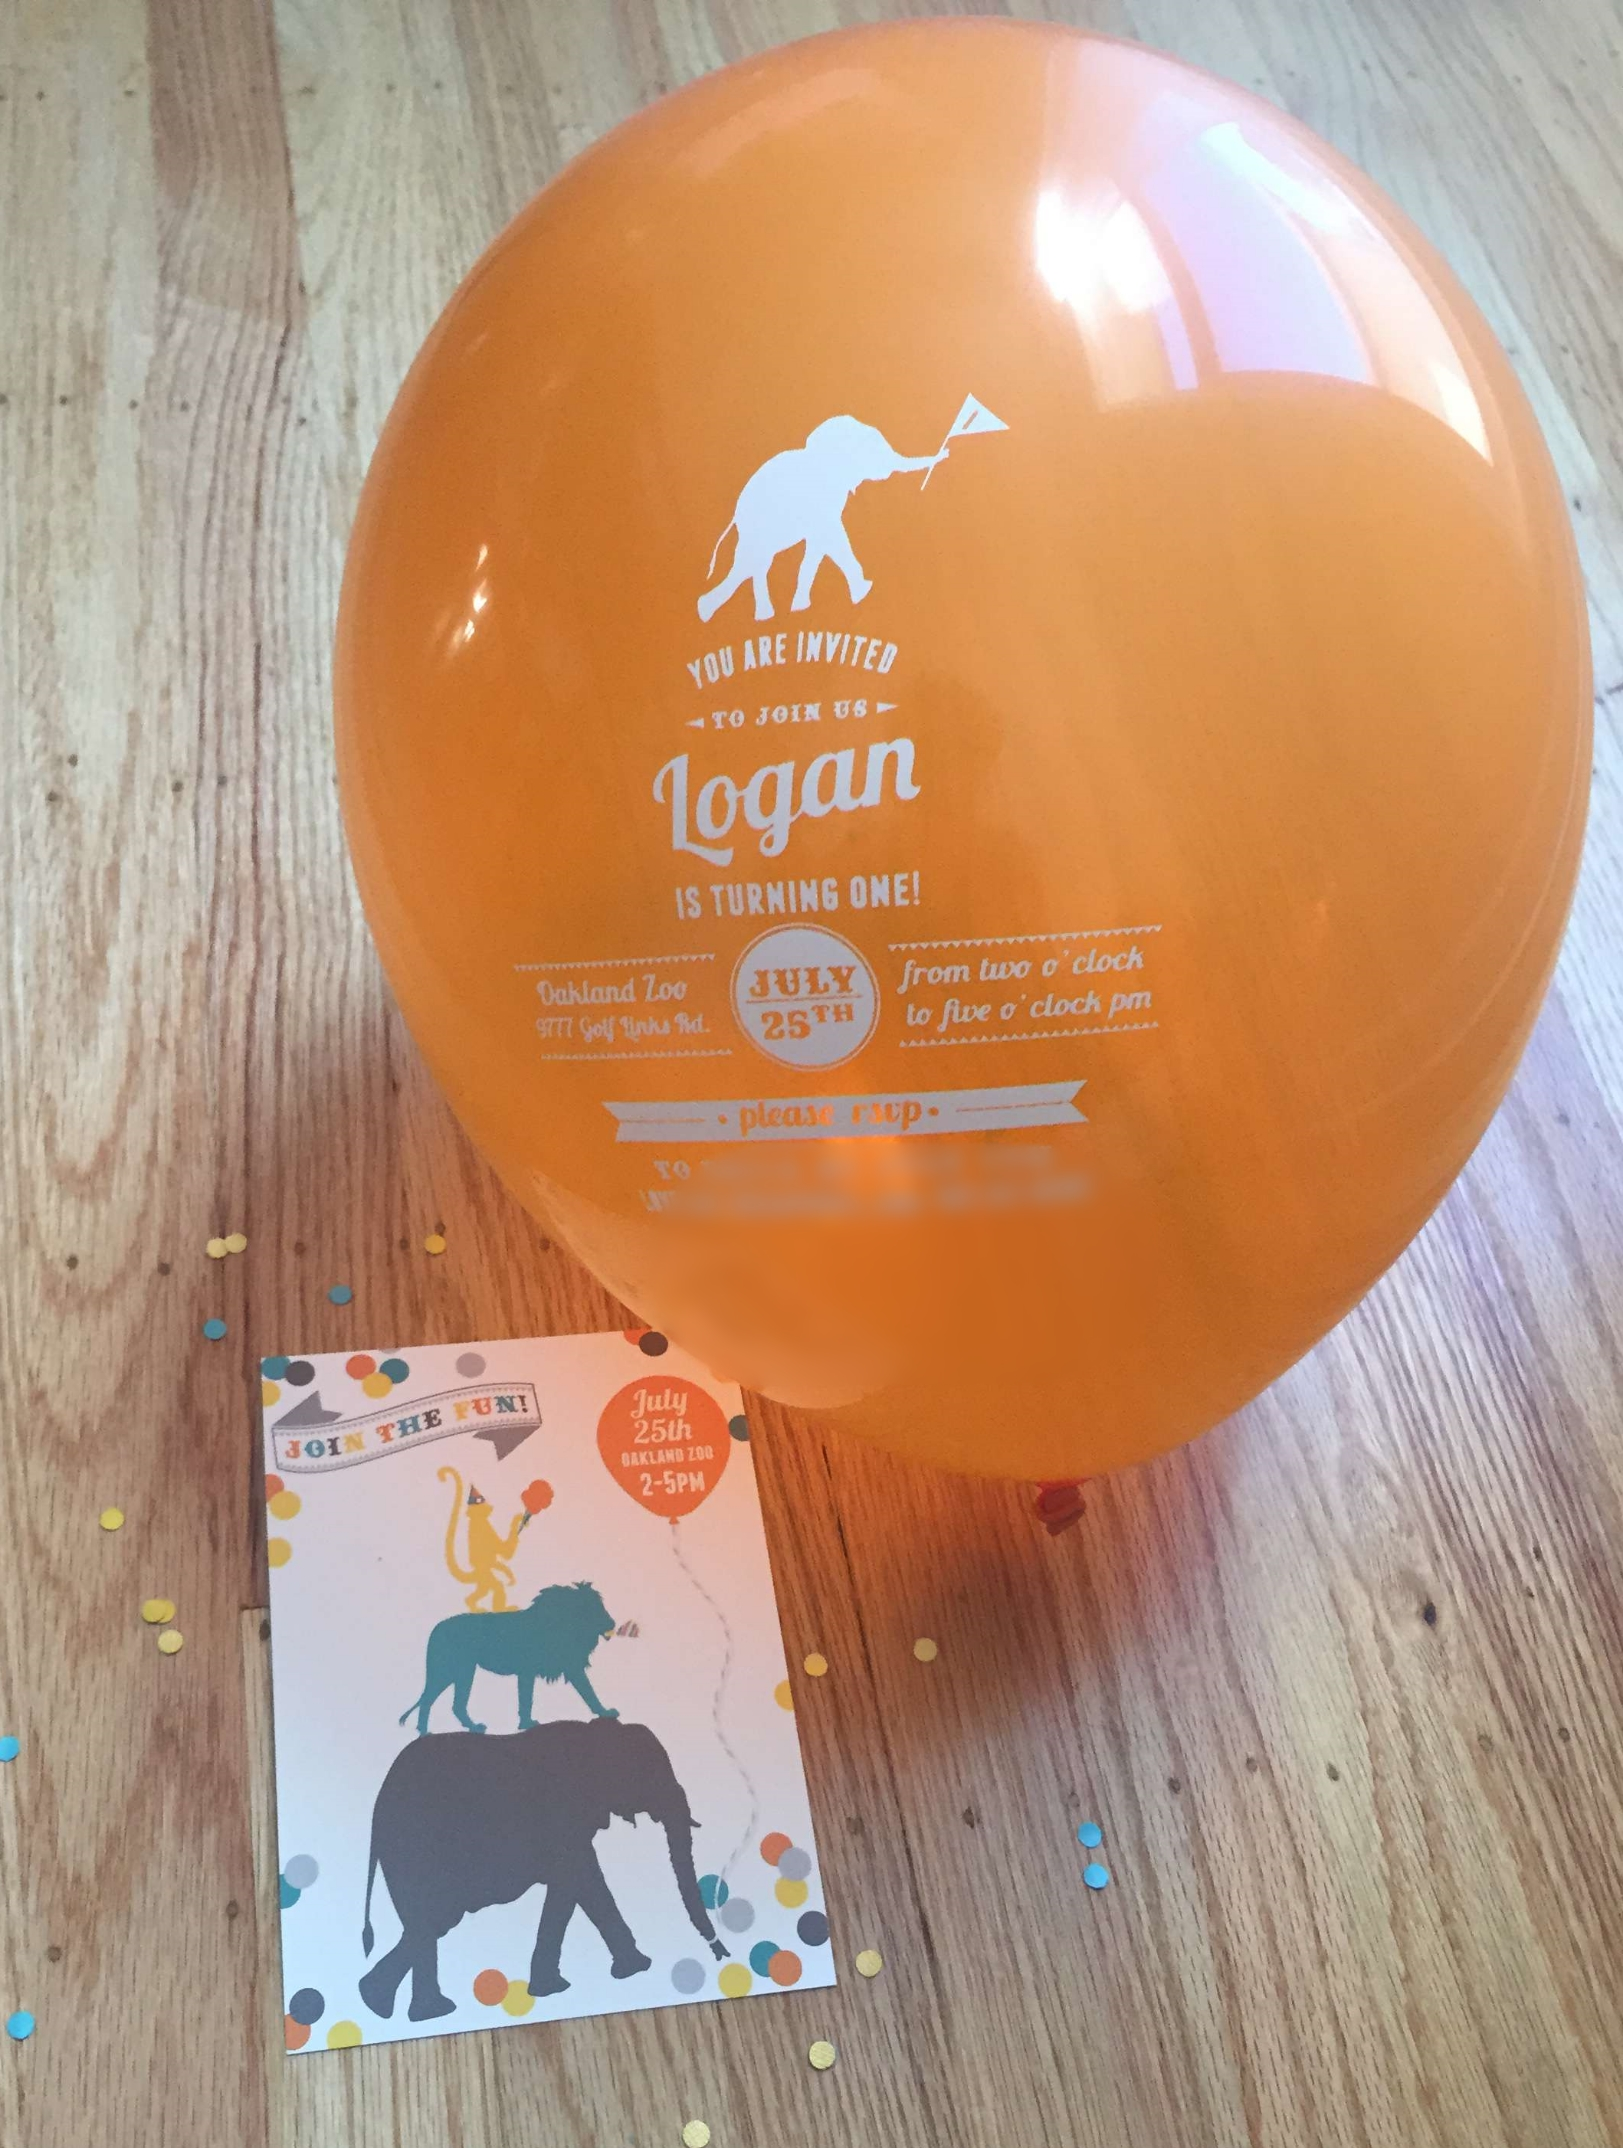 "img src=""httpwww.theparkwayevents.jpg"" alt=""San Francisco Bay Area Kids Birthday Party Event Planner Balloon Zoo Invitation"".jpg"